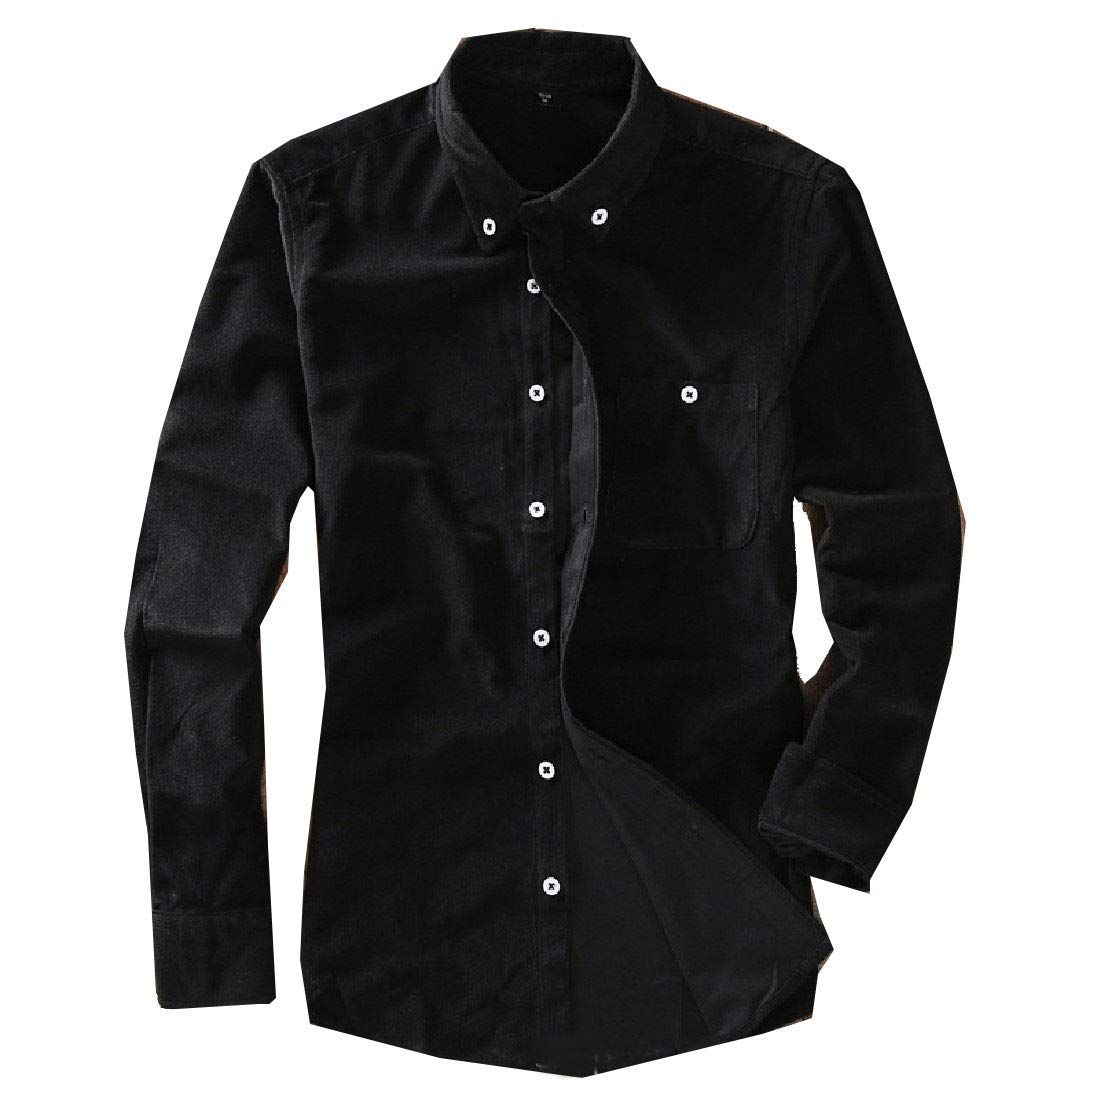 Zimaes-Men Pure Color Long-Sleeve Turn-Down Collar Corduroy Work Shirt